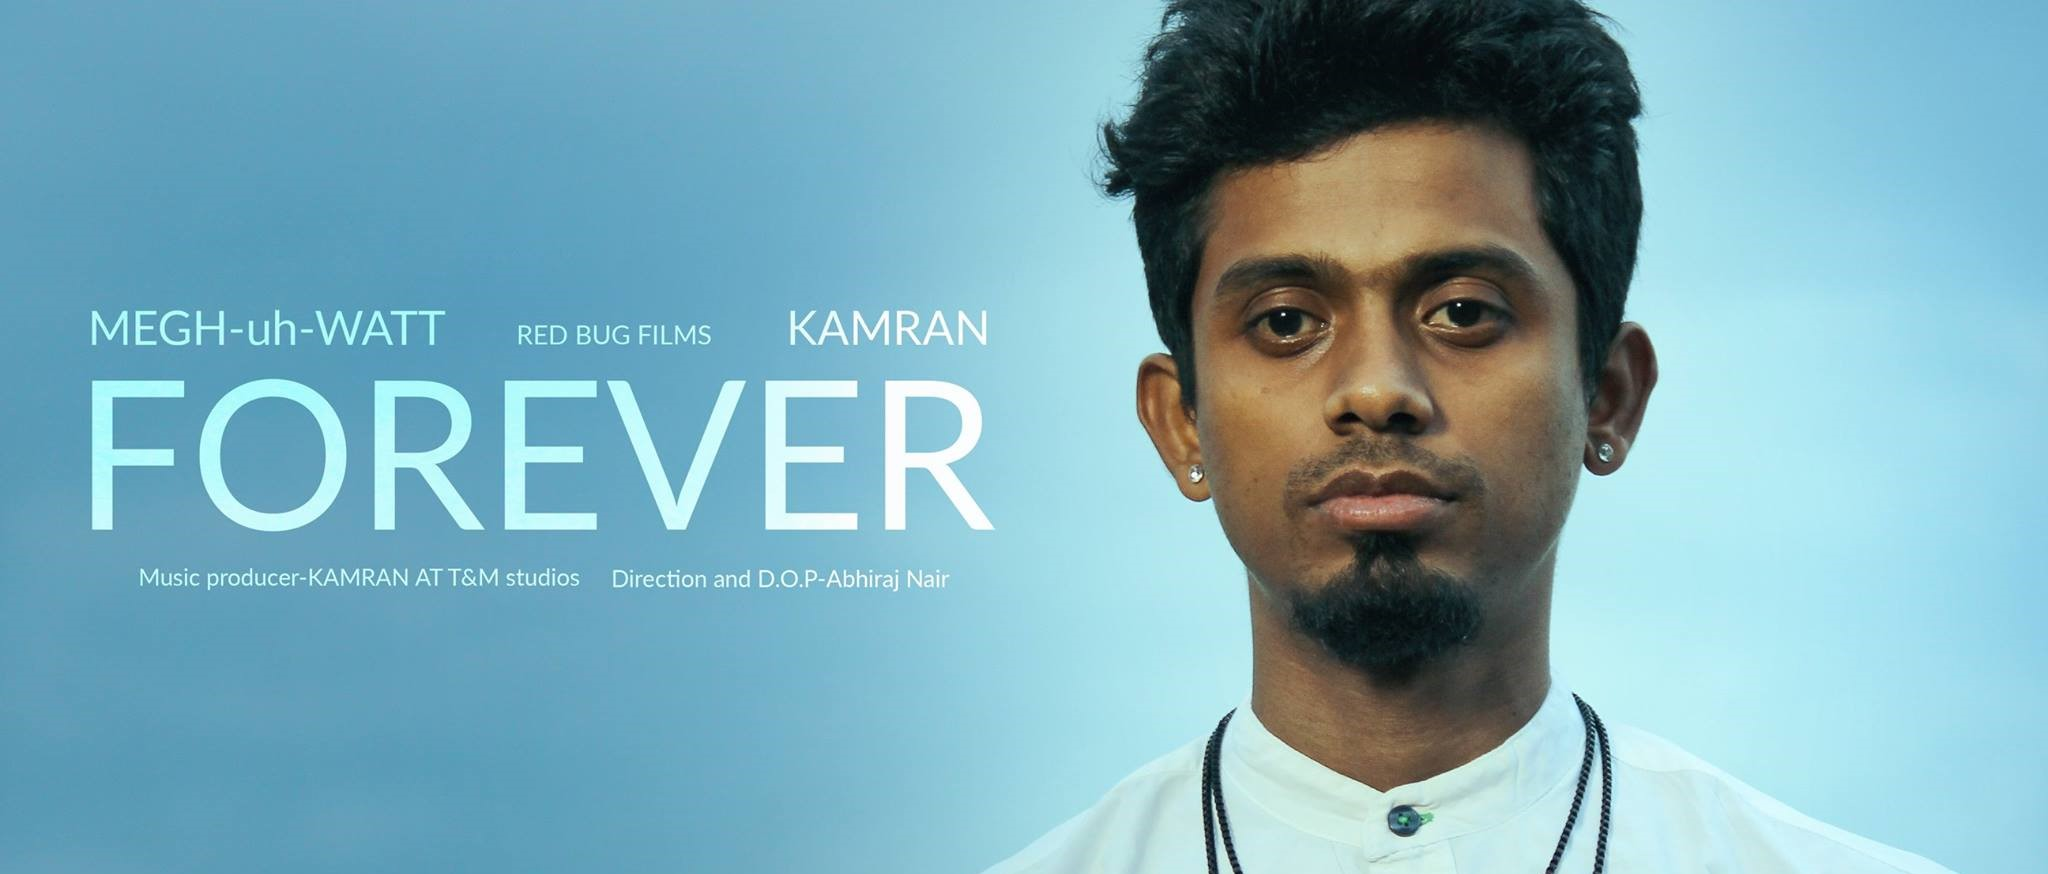 forever megh-uh-watt kamran mtv indies